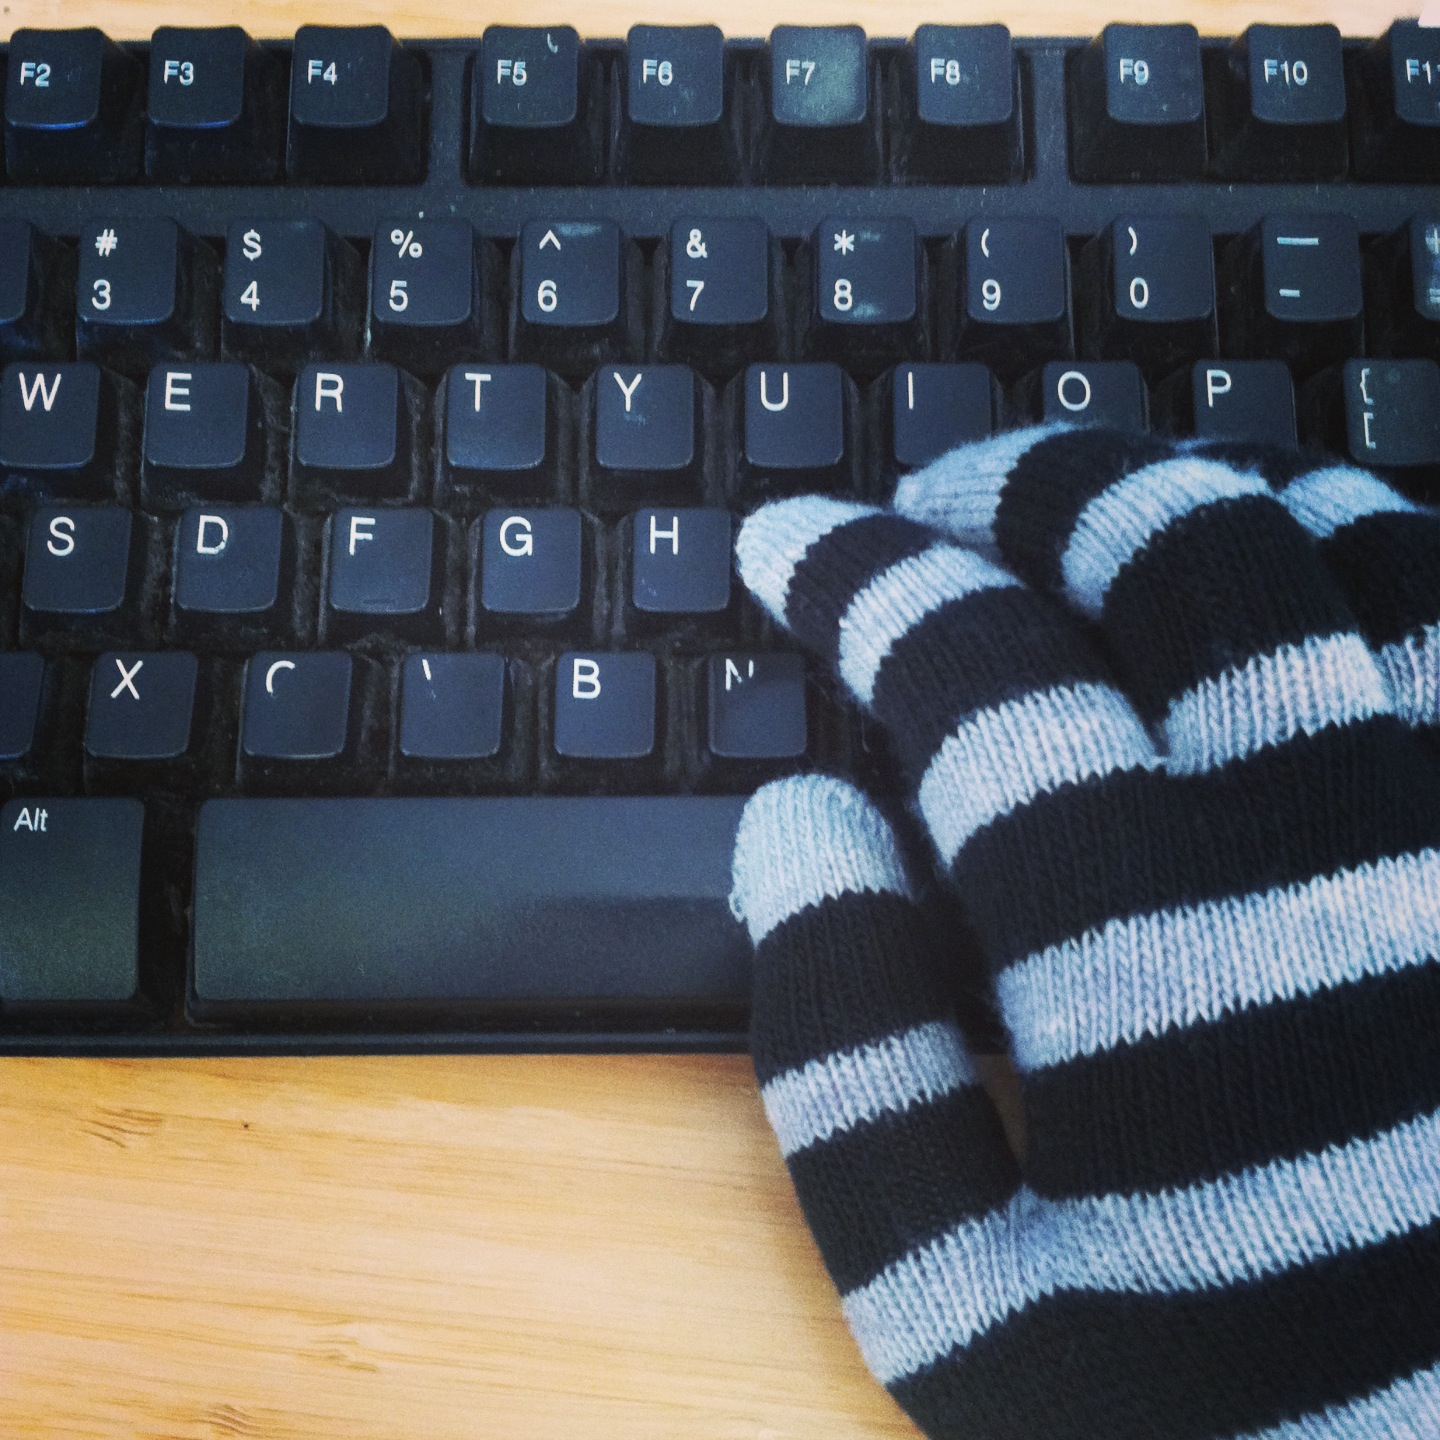 frozen to the keyboard